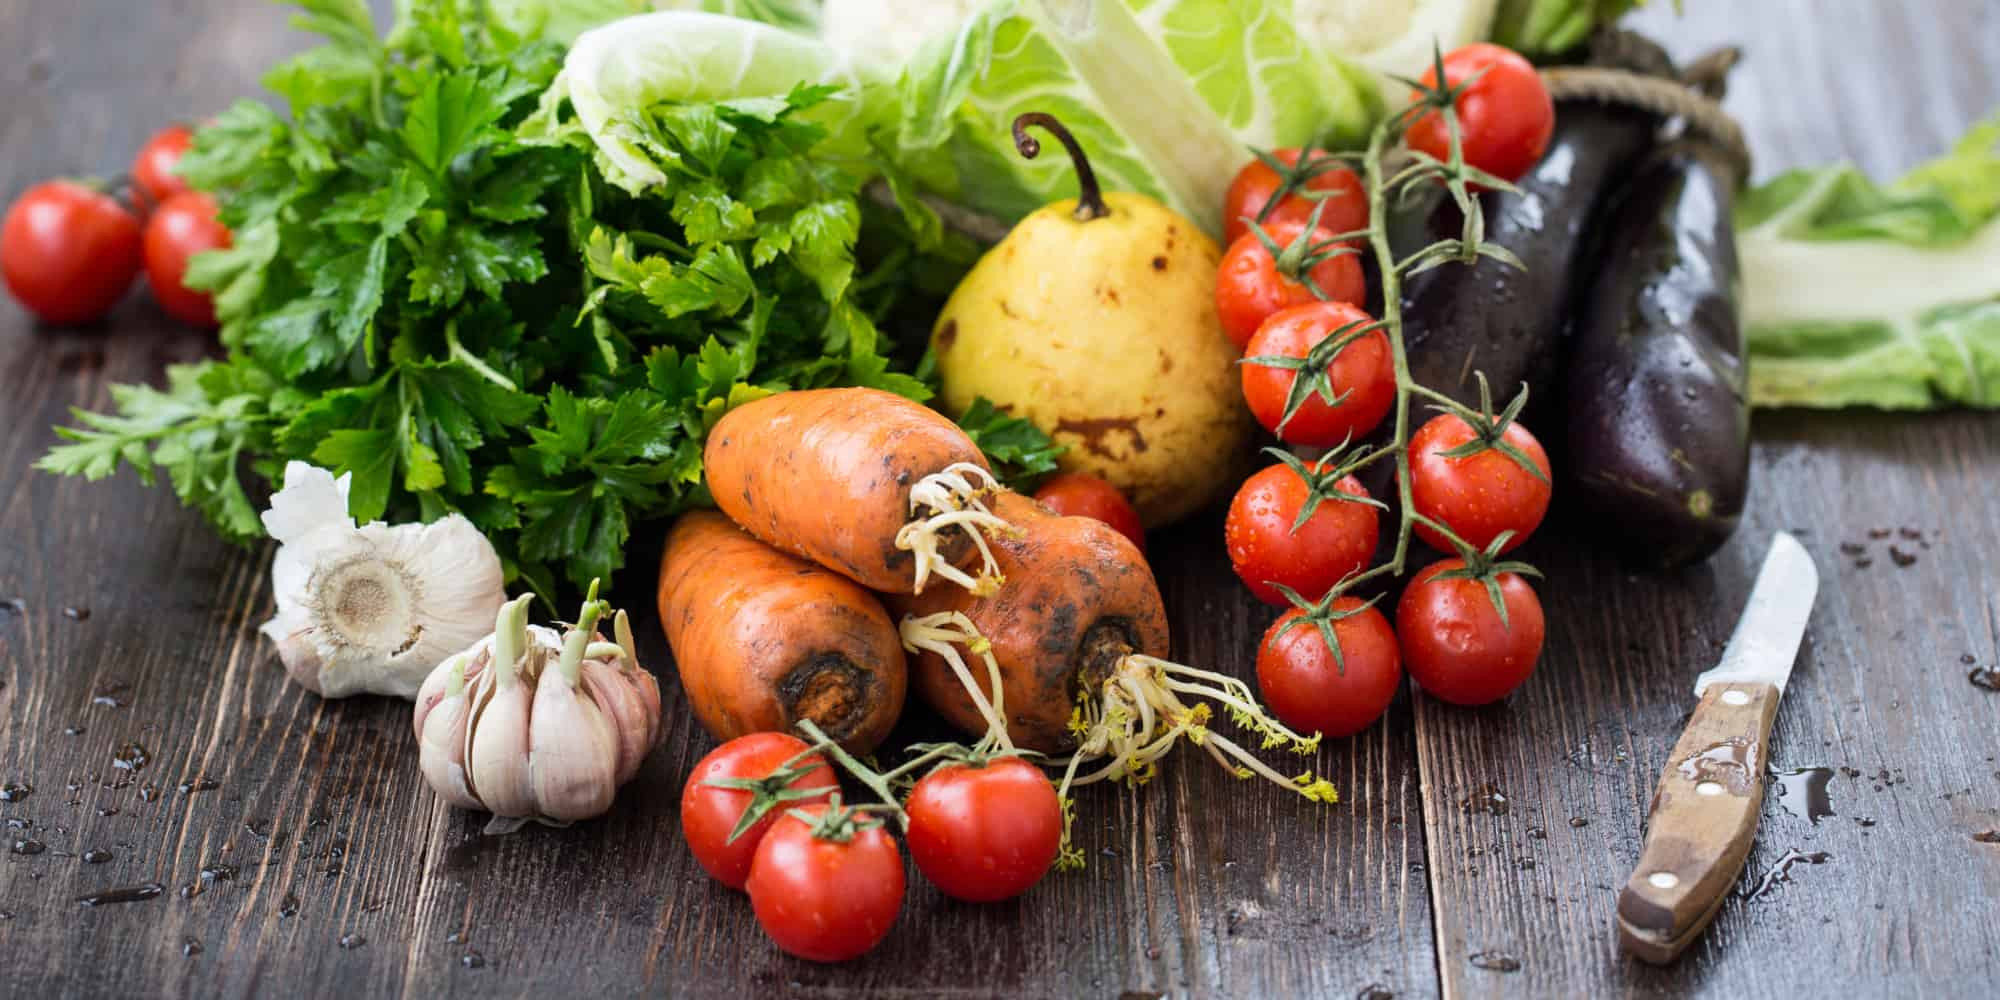 Is A Potato A Fruit Or Vegetable  These Are The 12 Most Toxic Fruits And Ve ables To